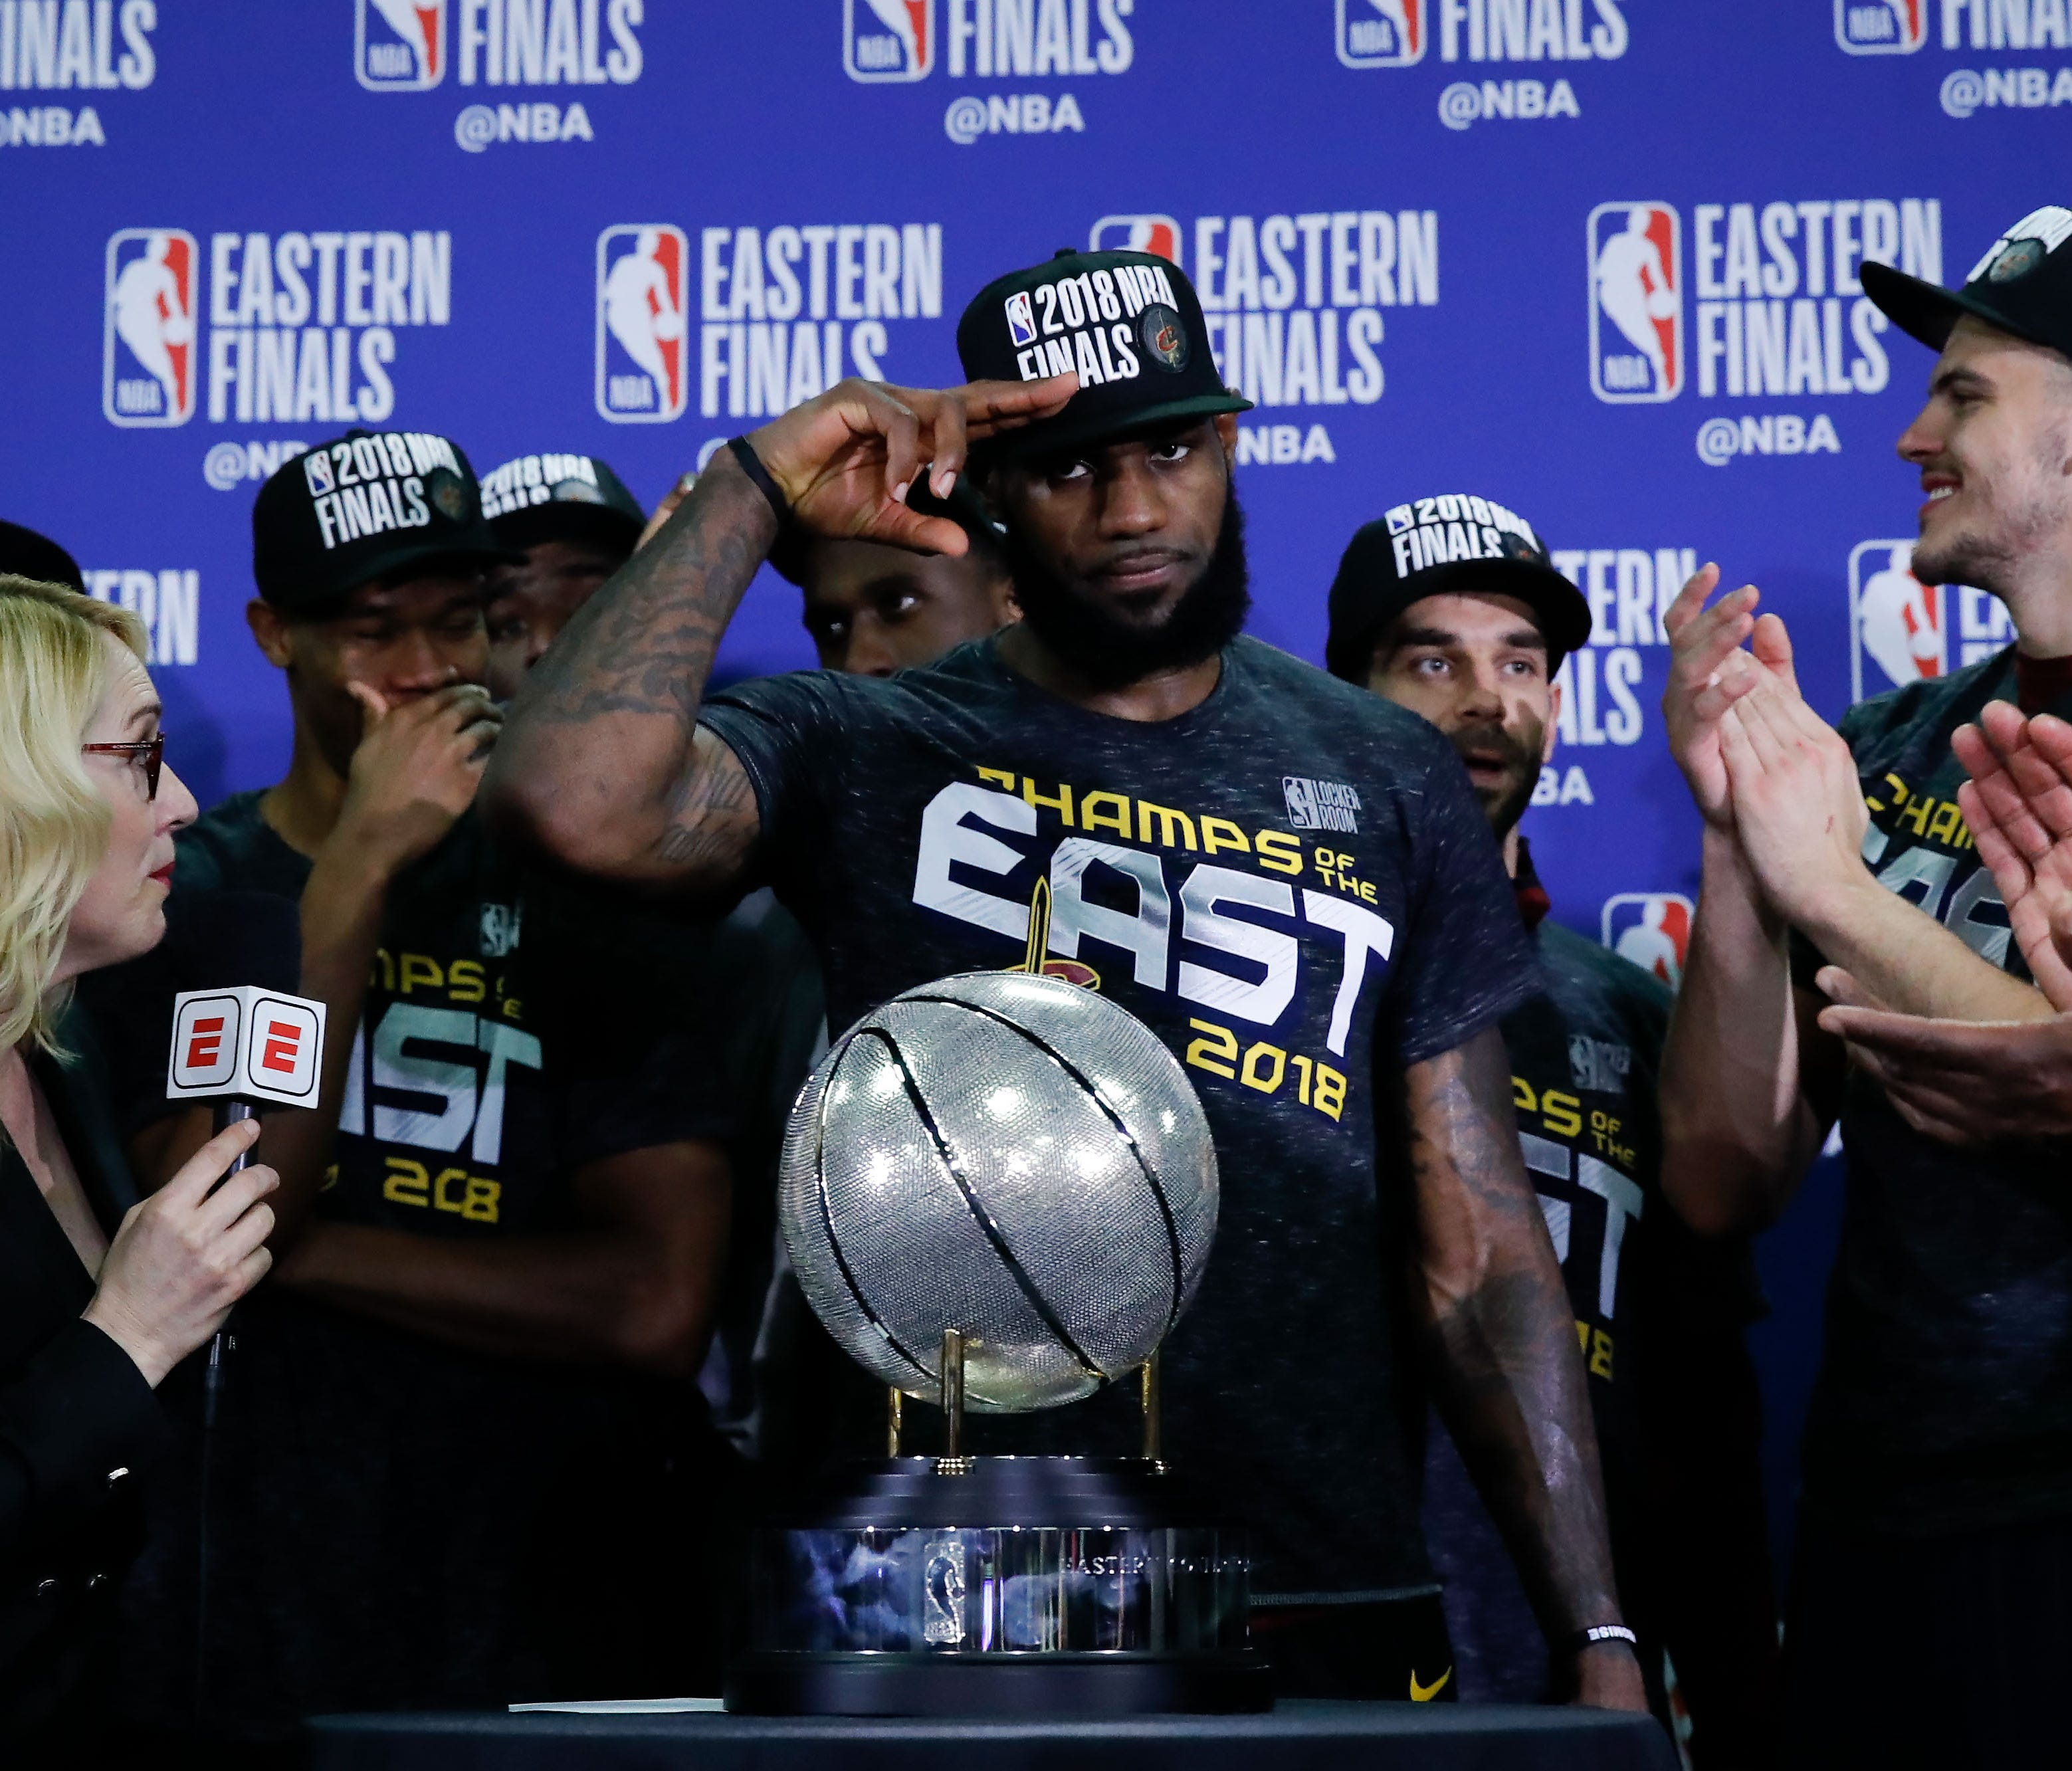 Cleveland Cavaliers forward LeBron James solutes in front of the Eastern Conference trophy after defeating the Boston Celtics in the 2018 NBA Playoffs at TD Garden.